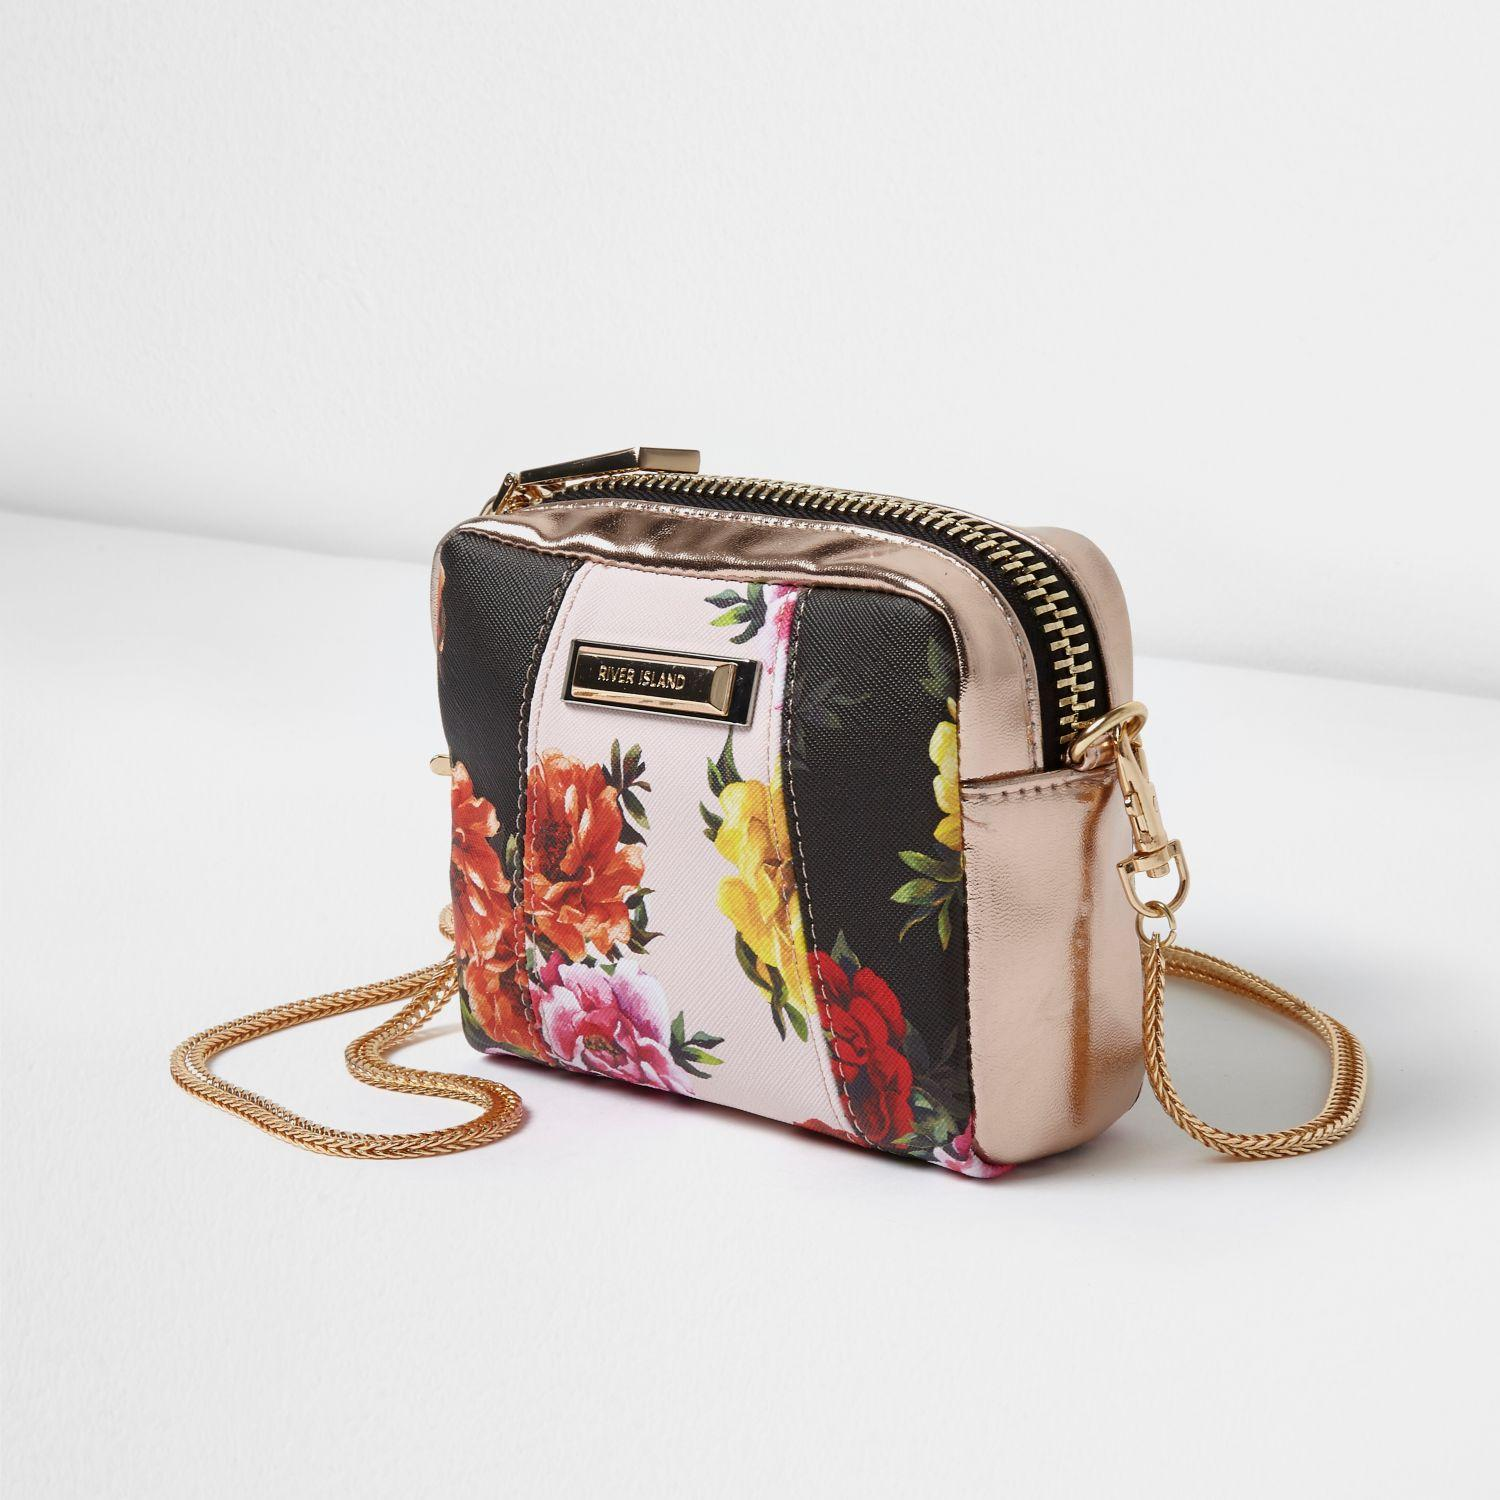 Lyst - River Island Black Floral Panel Mini Cross Body Chain Bag In Black